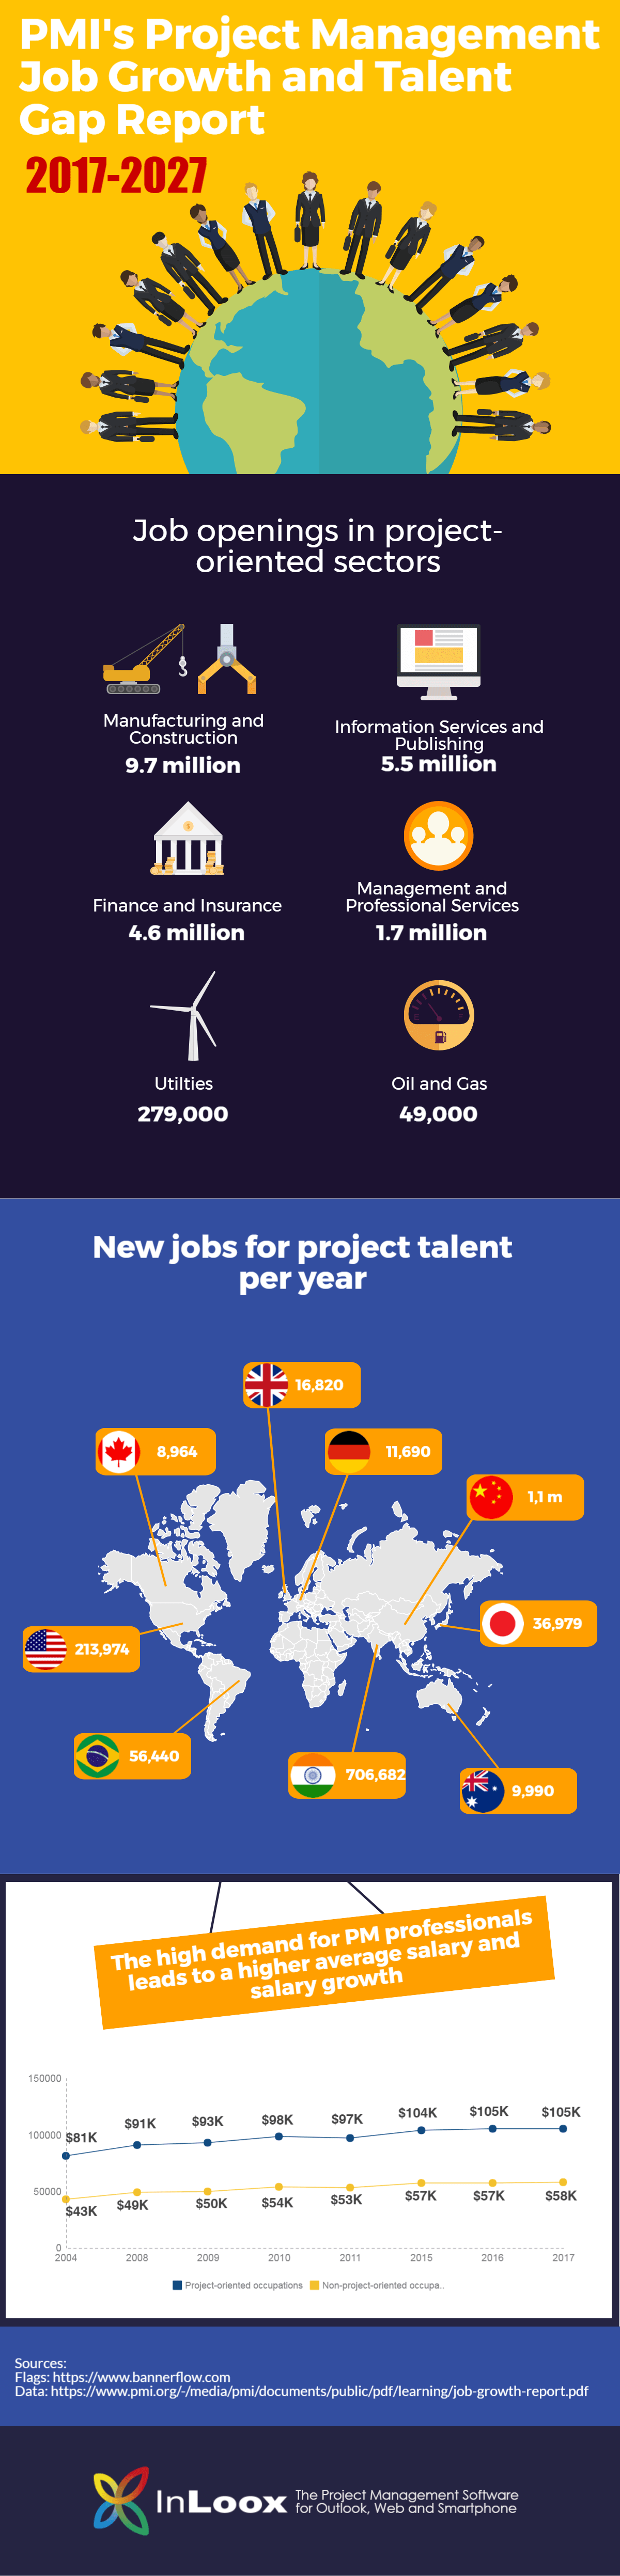 PMI Project Management Job Growth and Talent Gap 2017-2027